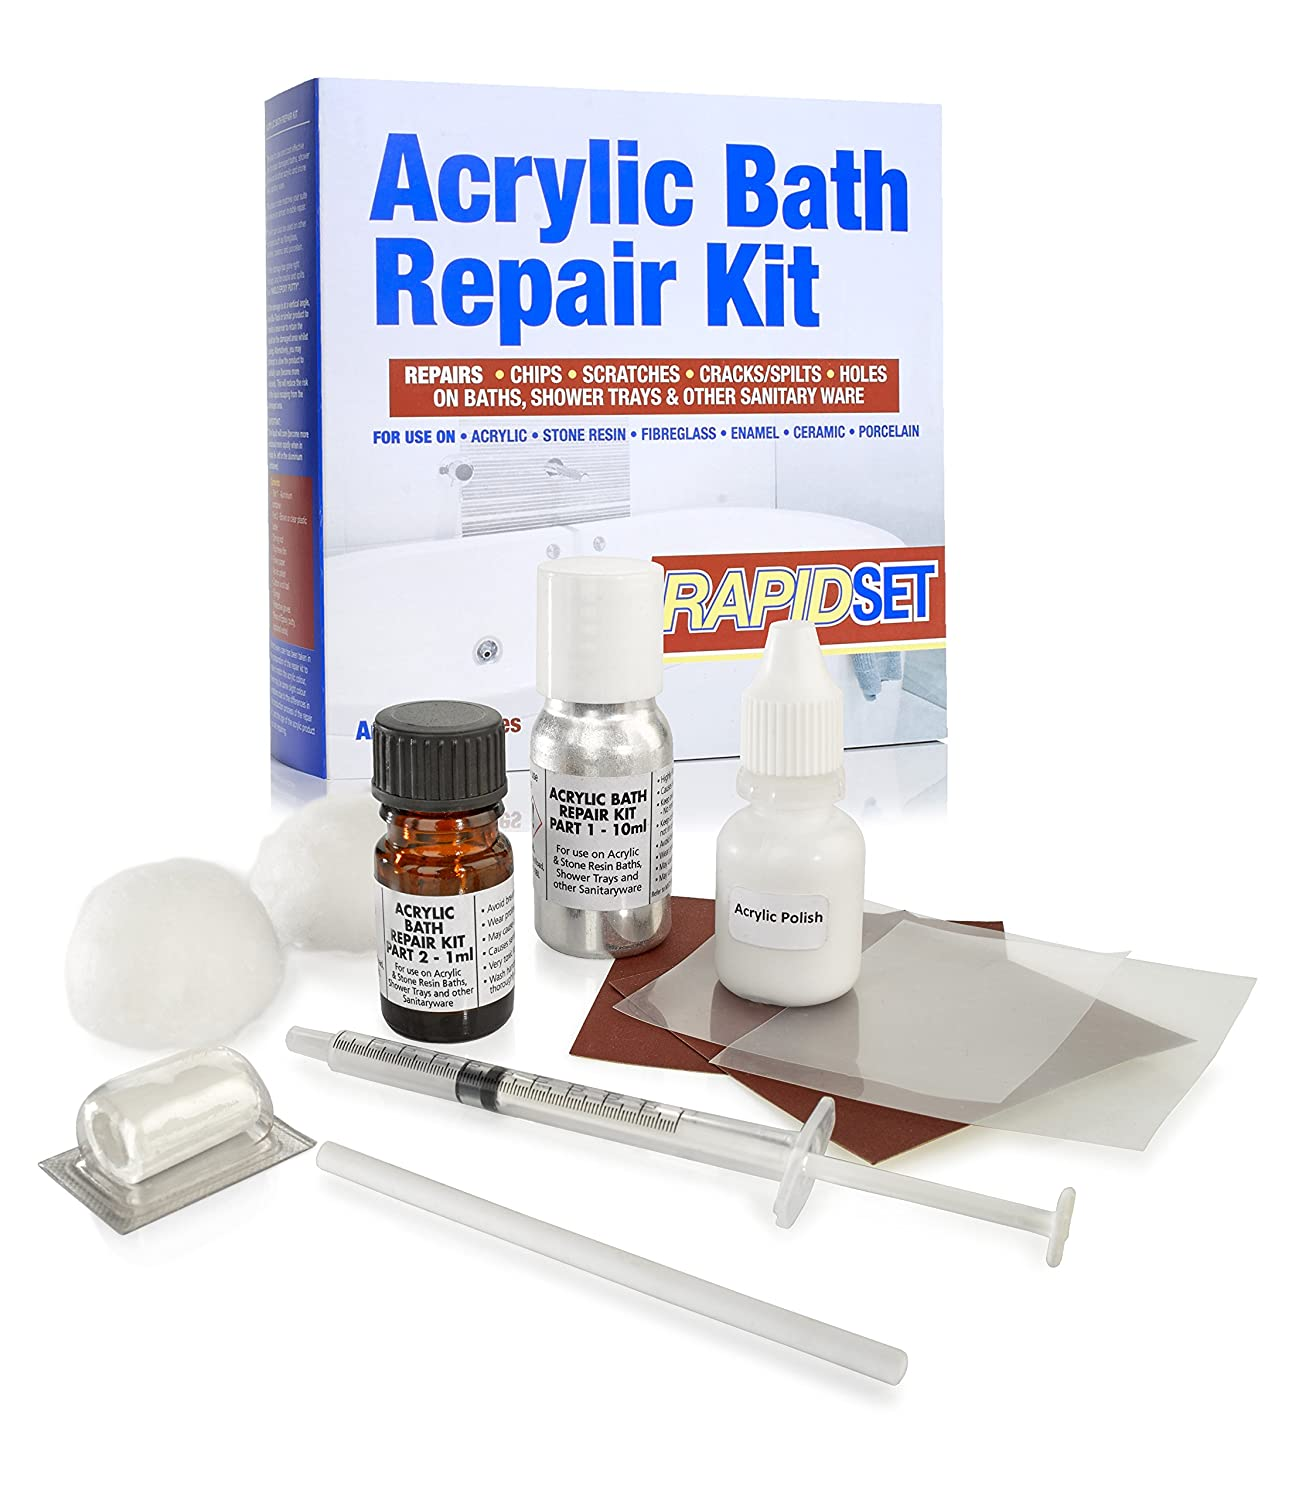 Acrylic Bath Repair Kit Inc Putty   Repairs Cracks, Splits U0026 Leaking  Damages In Baths U0026 Shower Trays   Colour Matched European White.